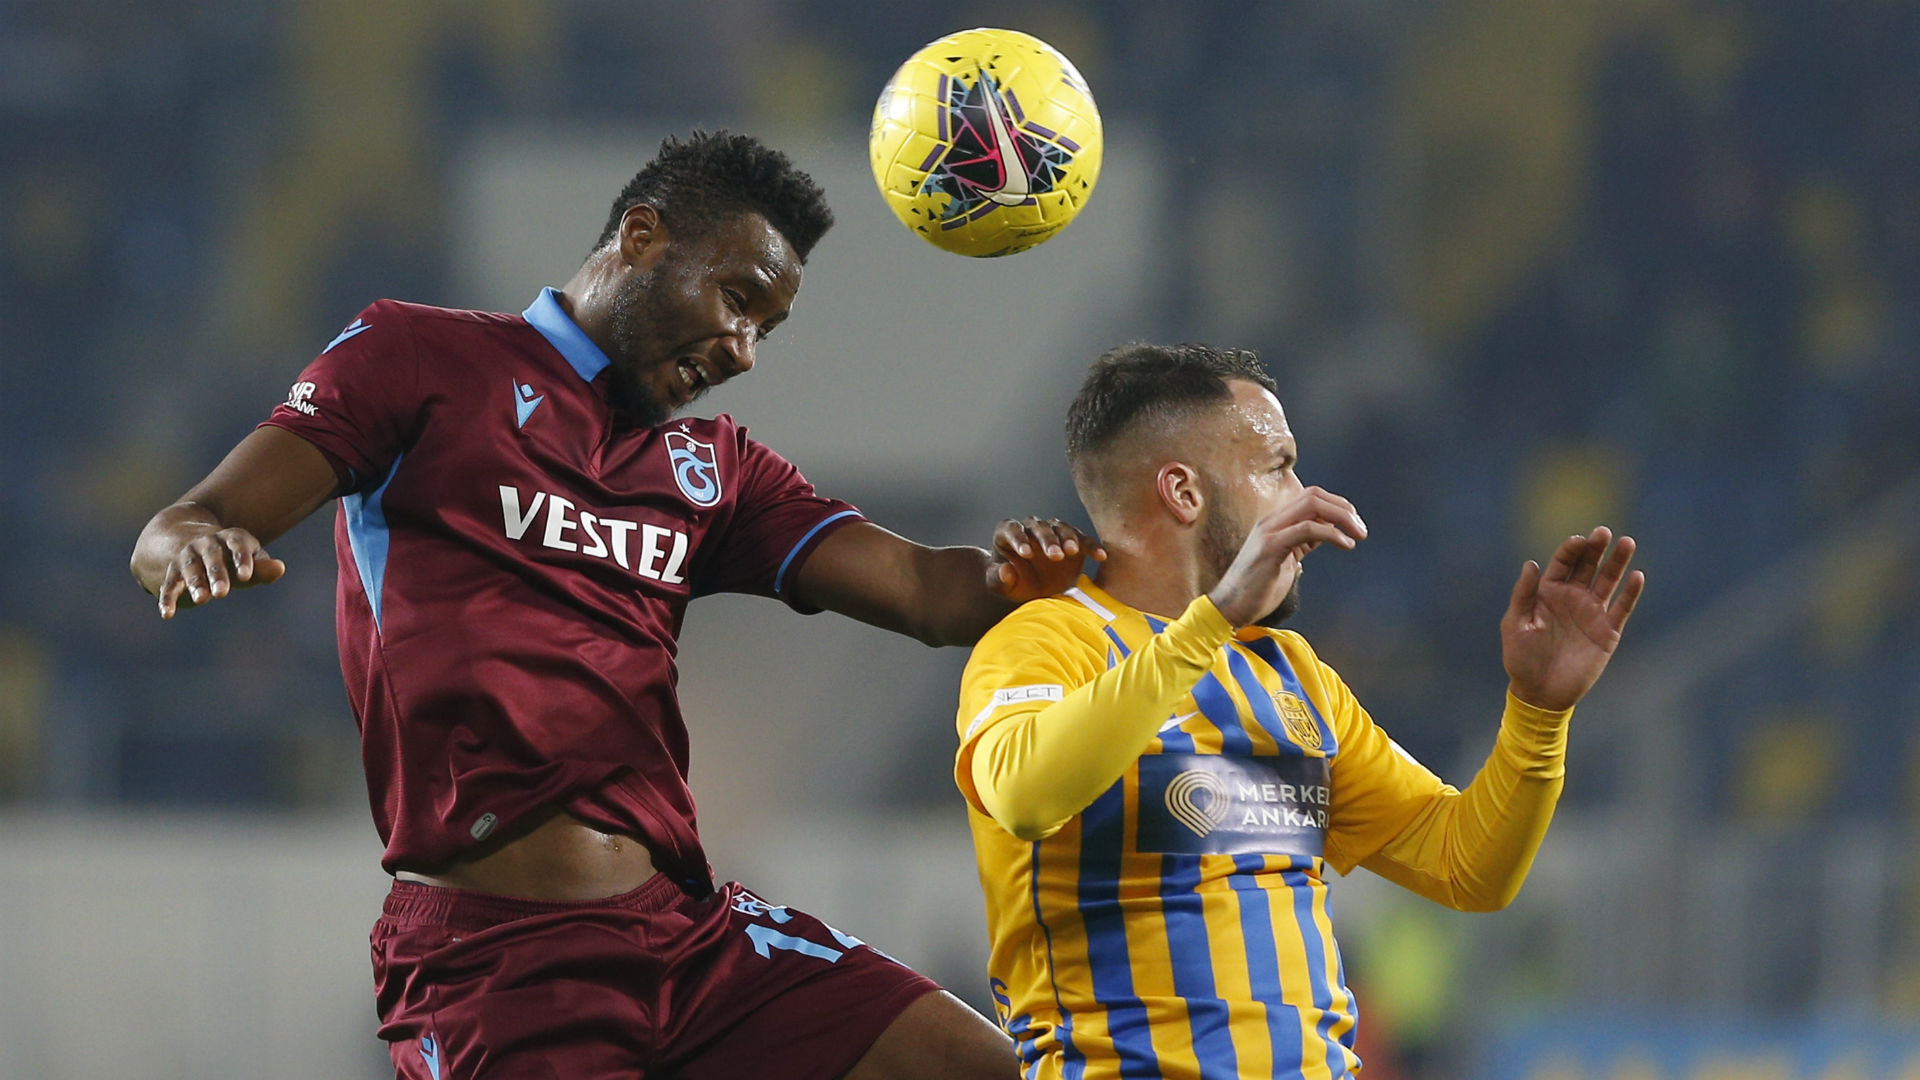 Trabzonspor and Mikel Obi part ways by mutual consent